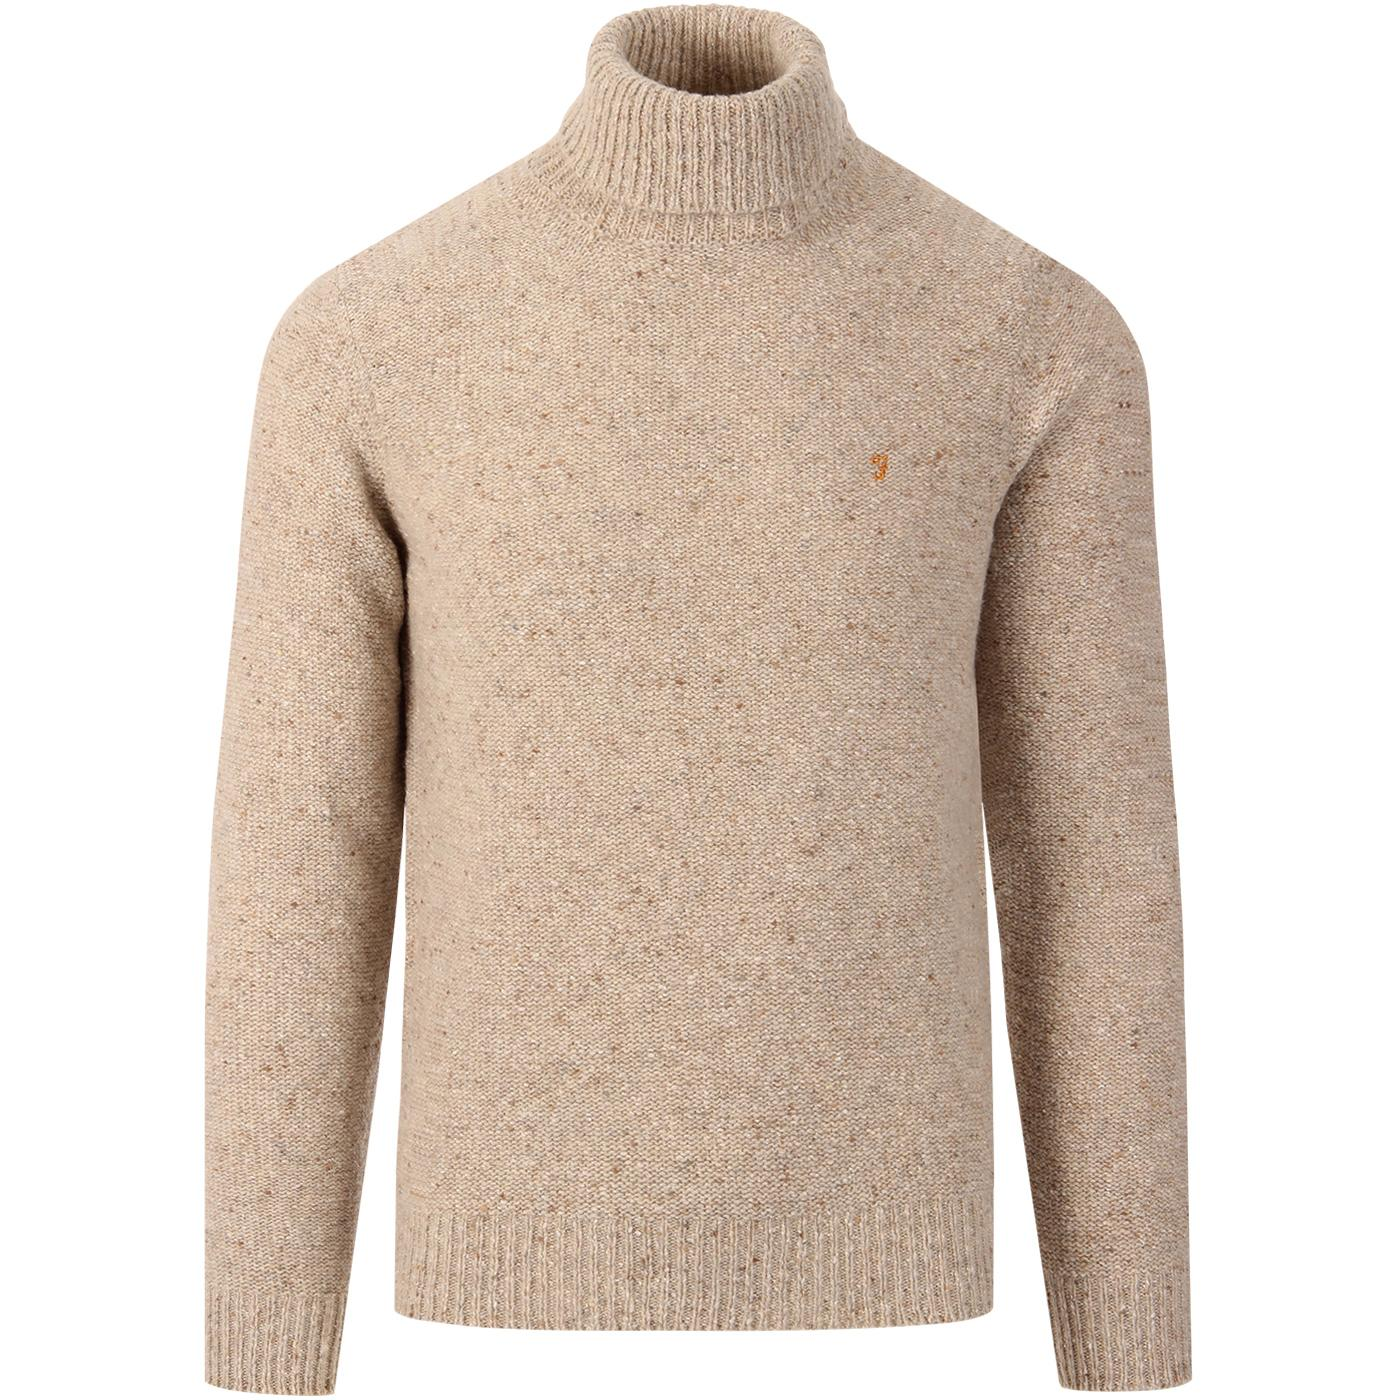 Batton FARAH Retro 60s Chunky Roll Neck Jumper LM